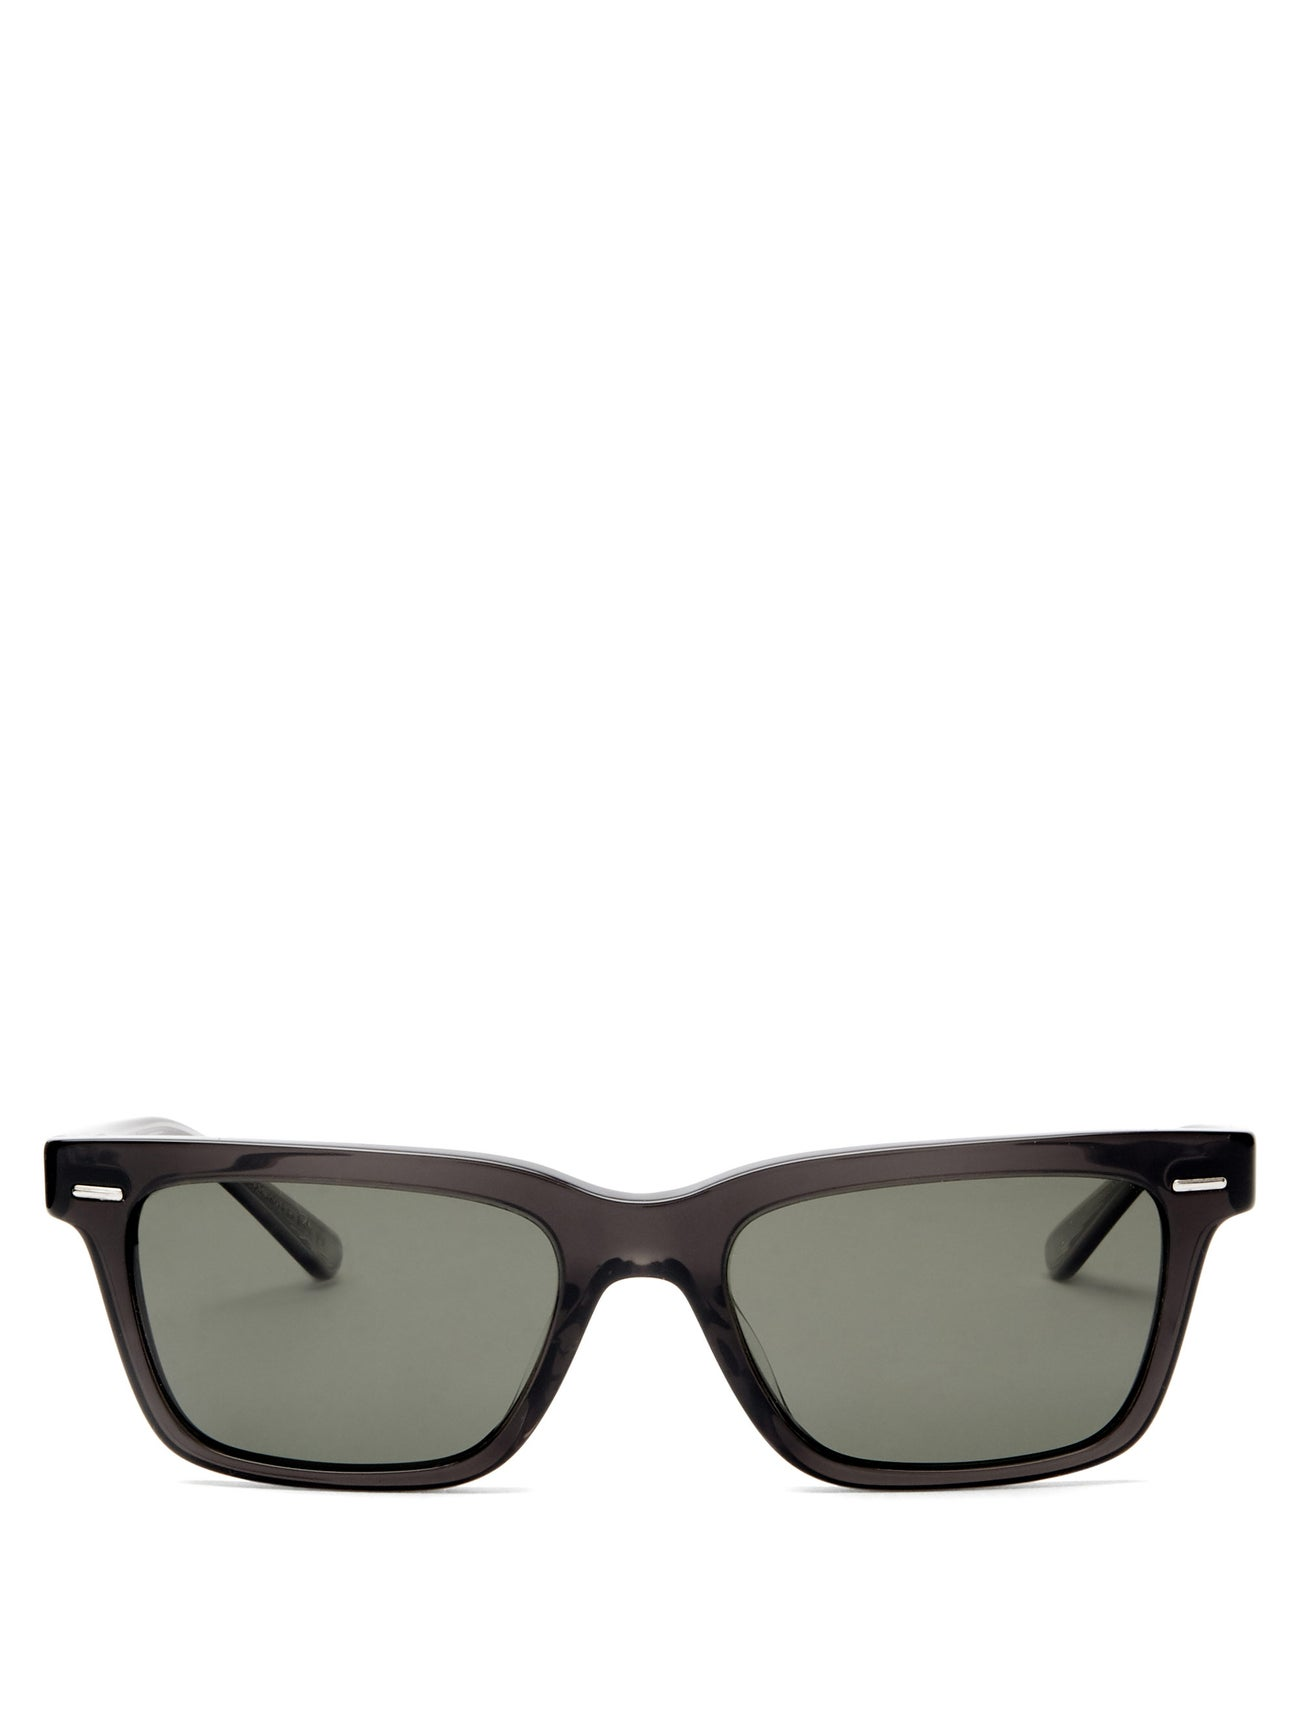 X Oliver Peoples BA CC acetate sunglasses by The Row, available on matchesfashion.com for EUR287 Emily Ratajkowski Sunglasses Exact Product